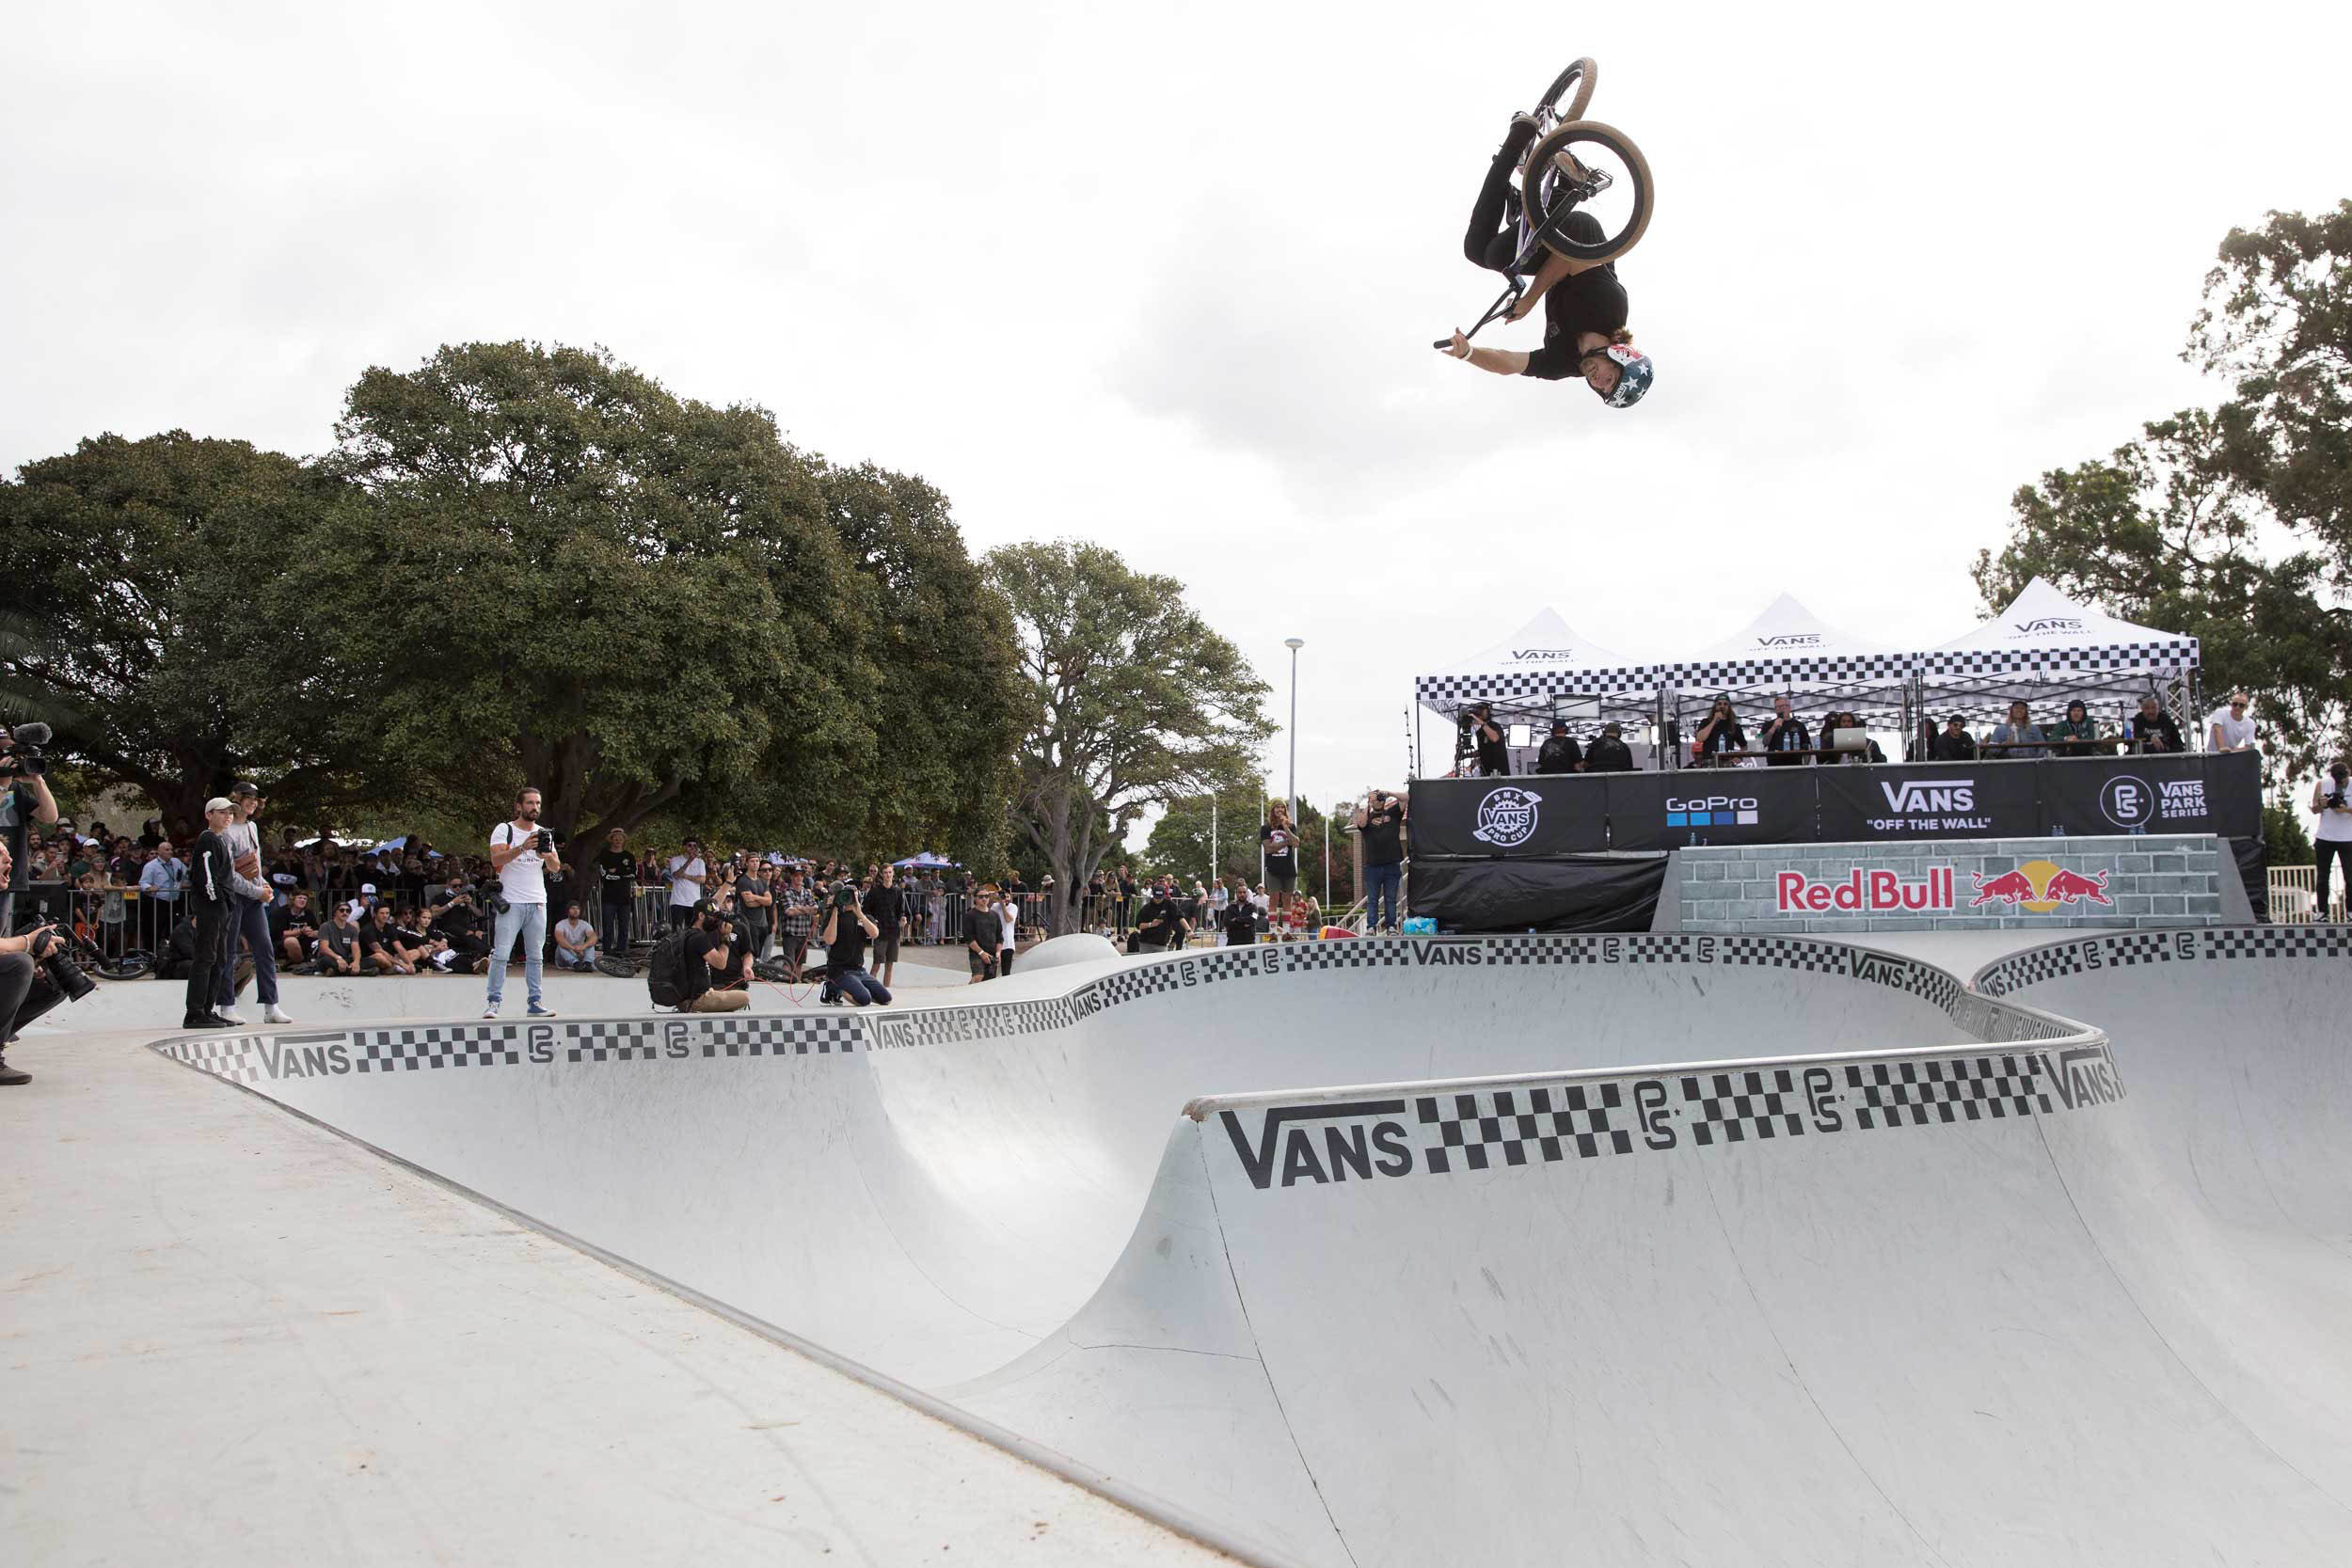 Vans BMX Pro Cup Sydney 2019 - All you need to know - DigBMX